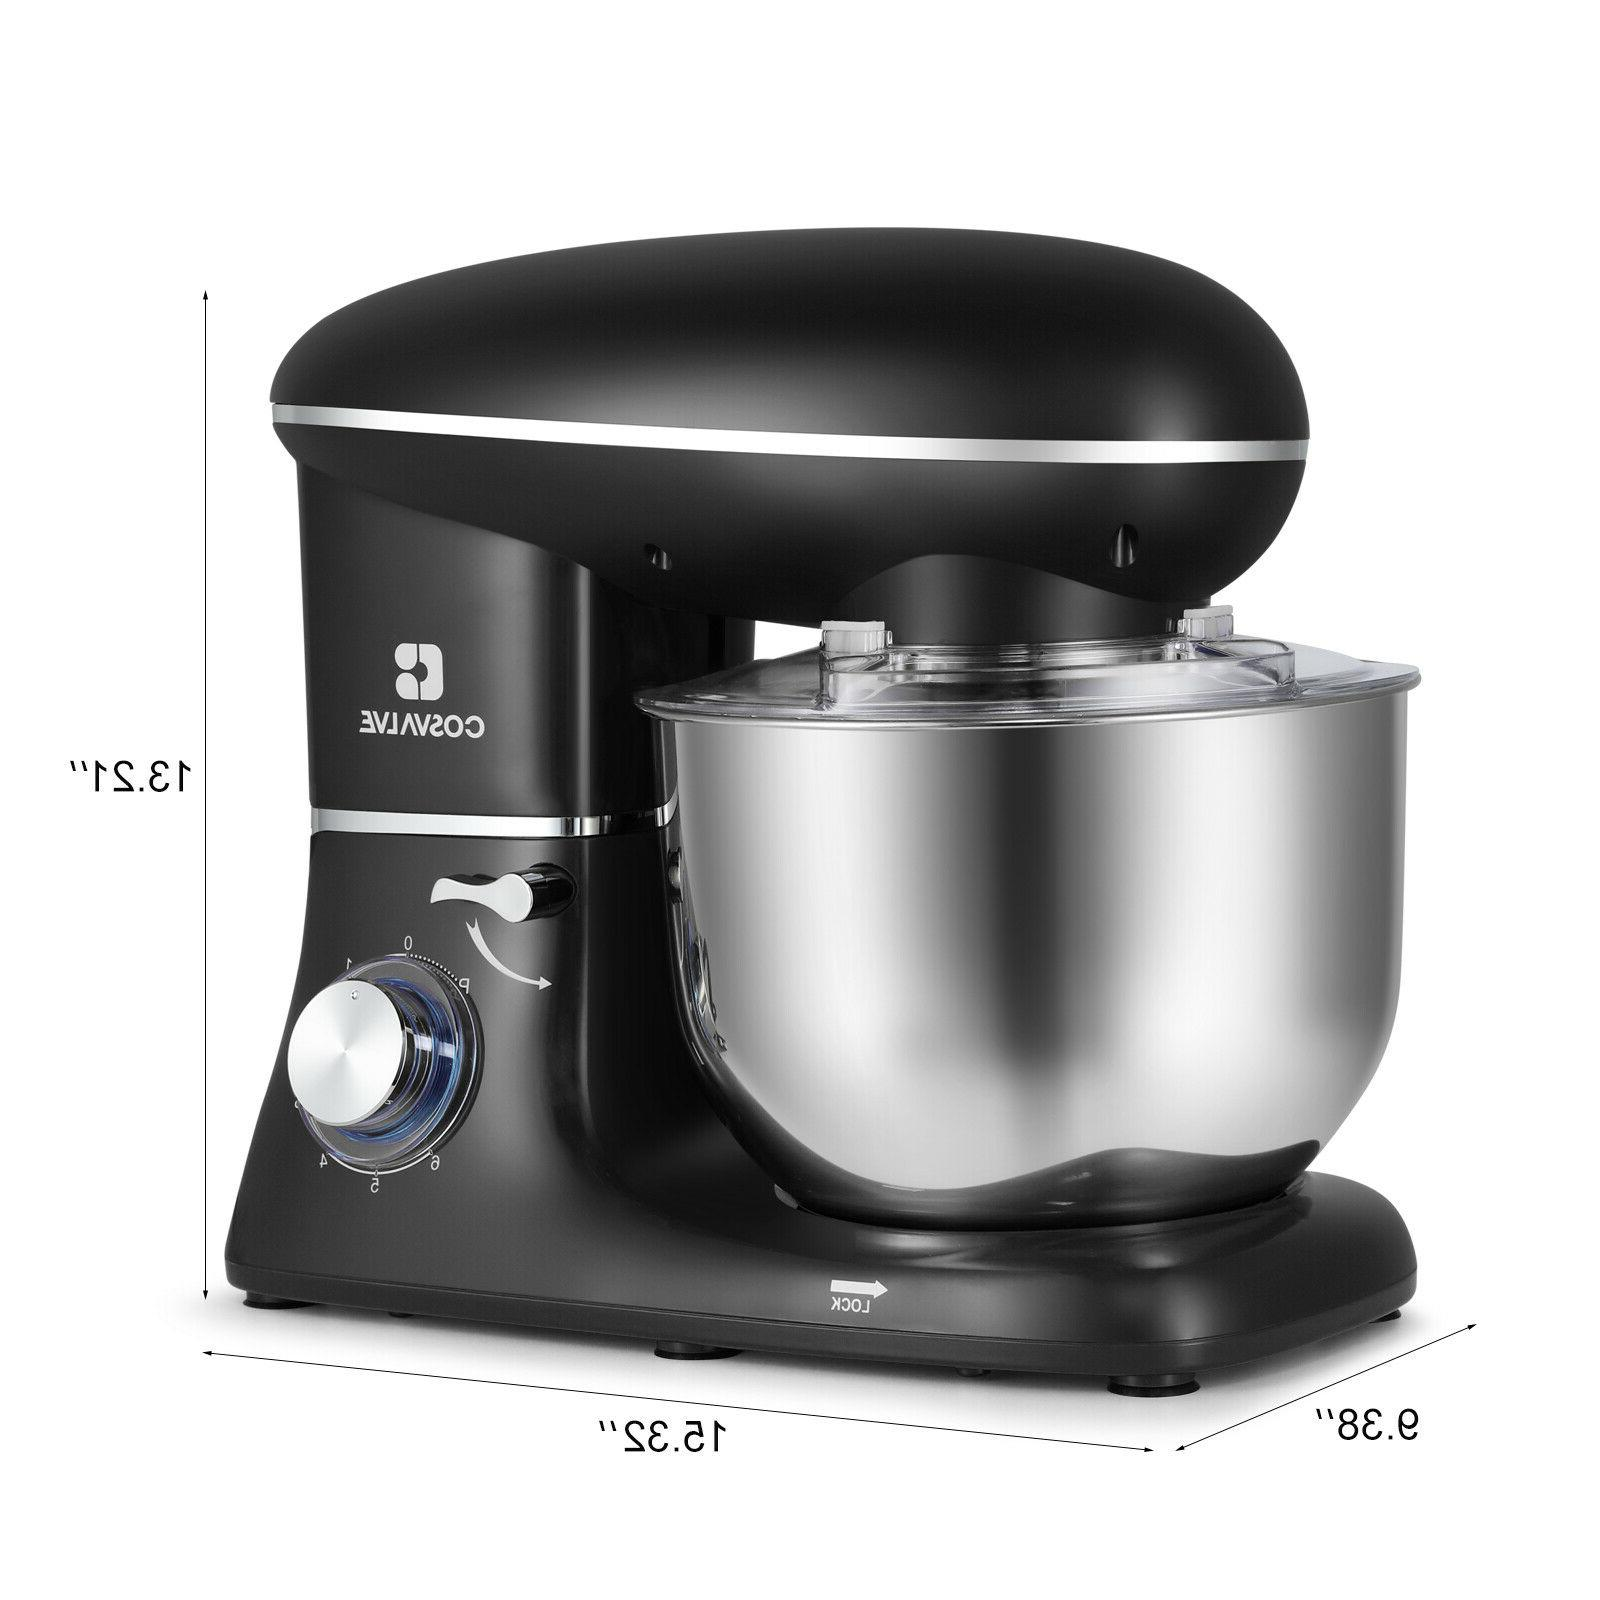 Pro Electric Mixer 6.2QT Speed Stainless Bowl Black